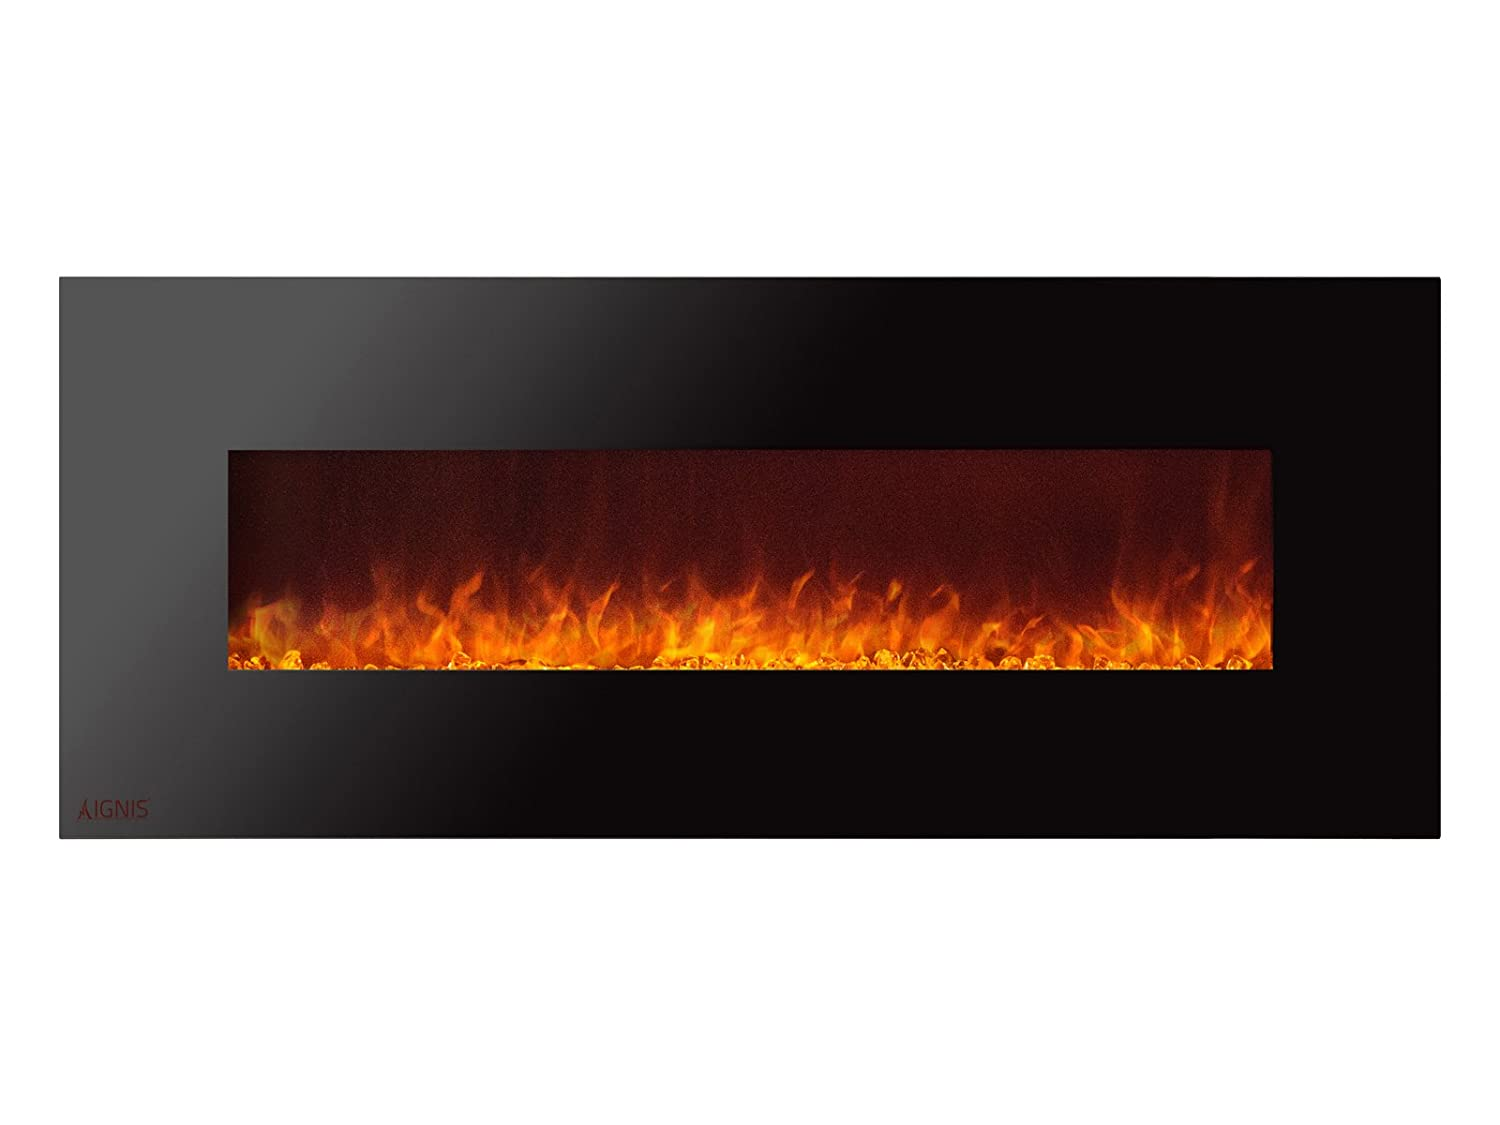 Amazon.com: Ignis Royal 60 inch Wall Mounted Electric Fireplace ...